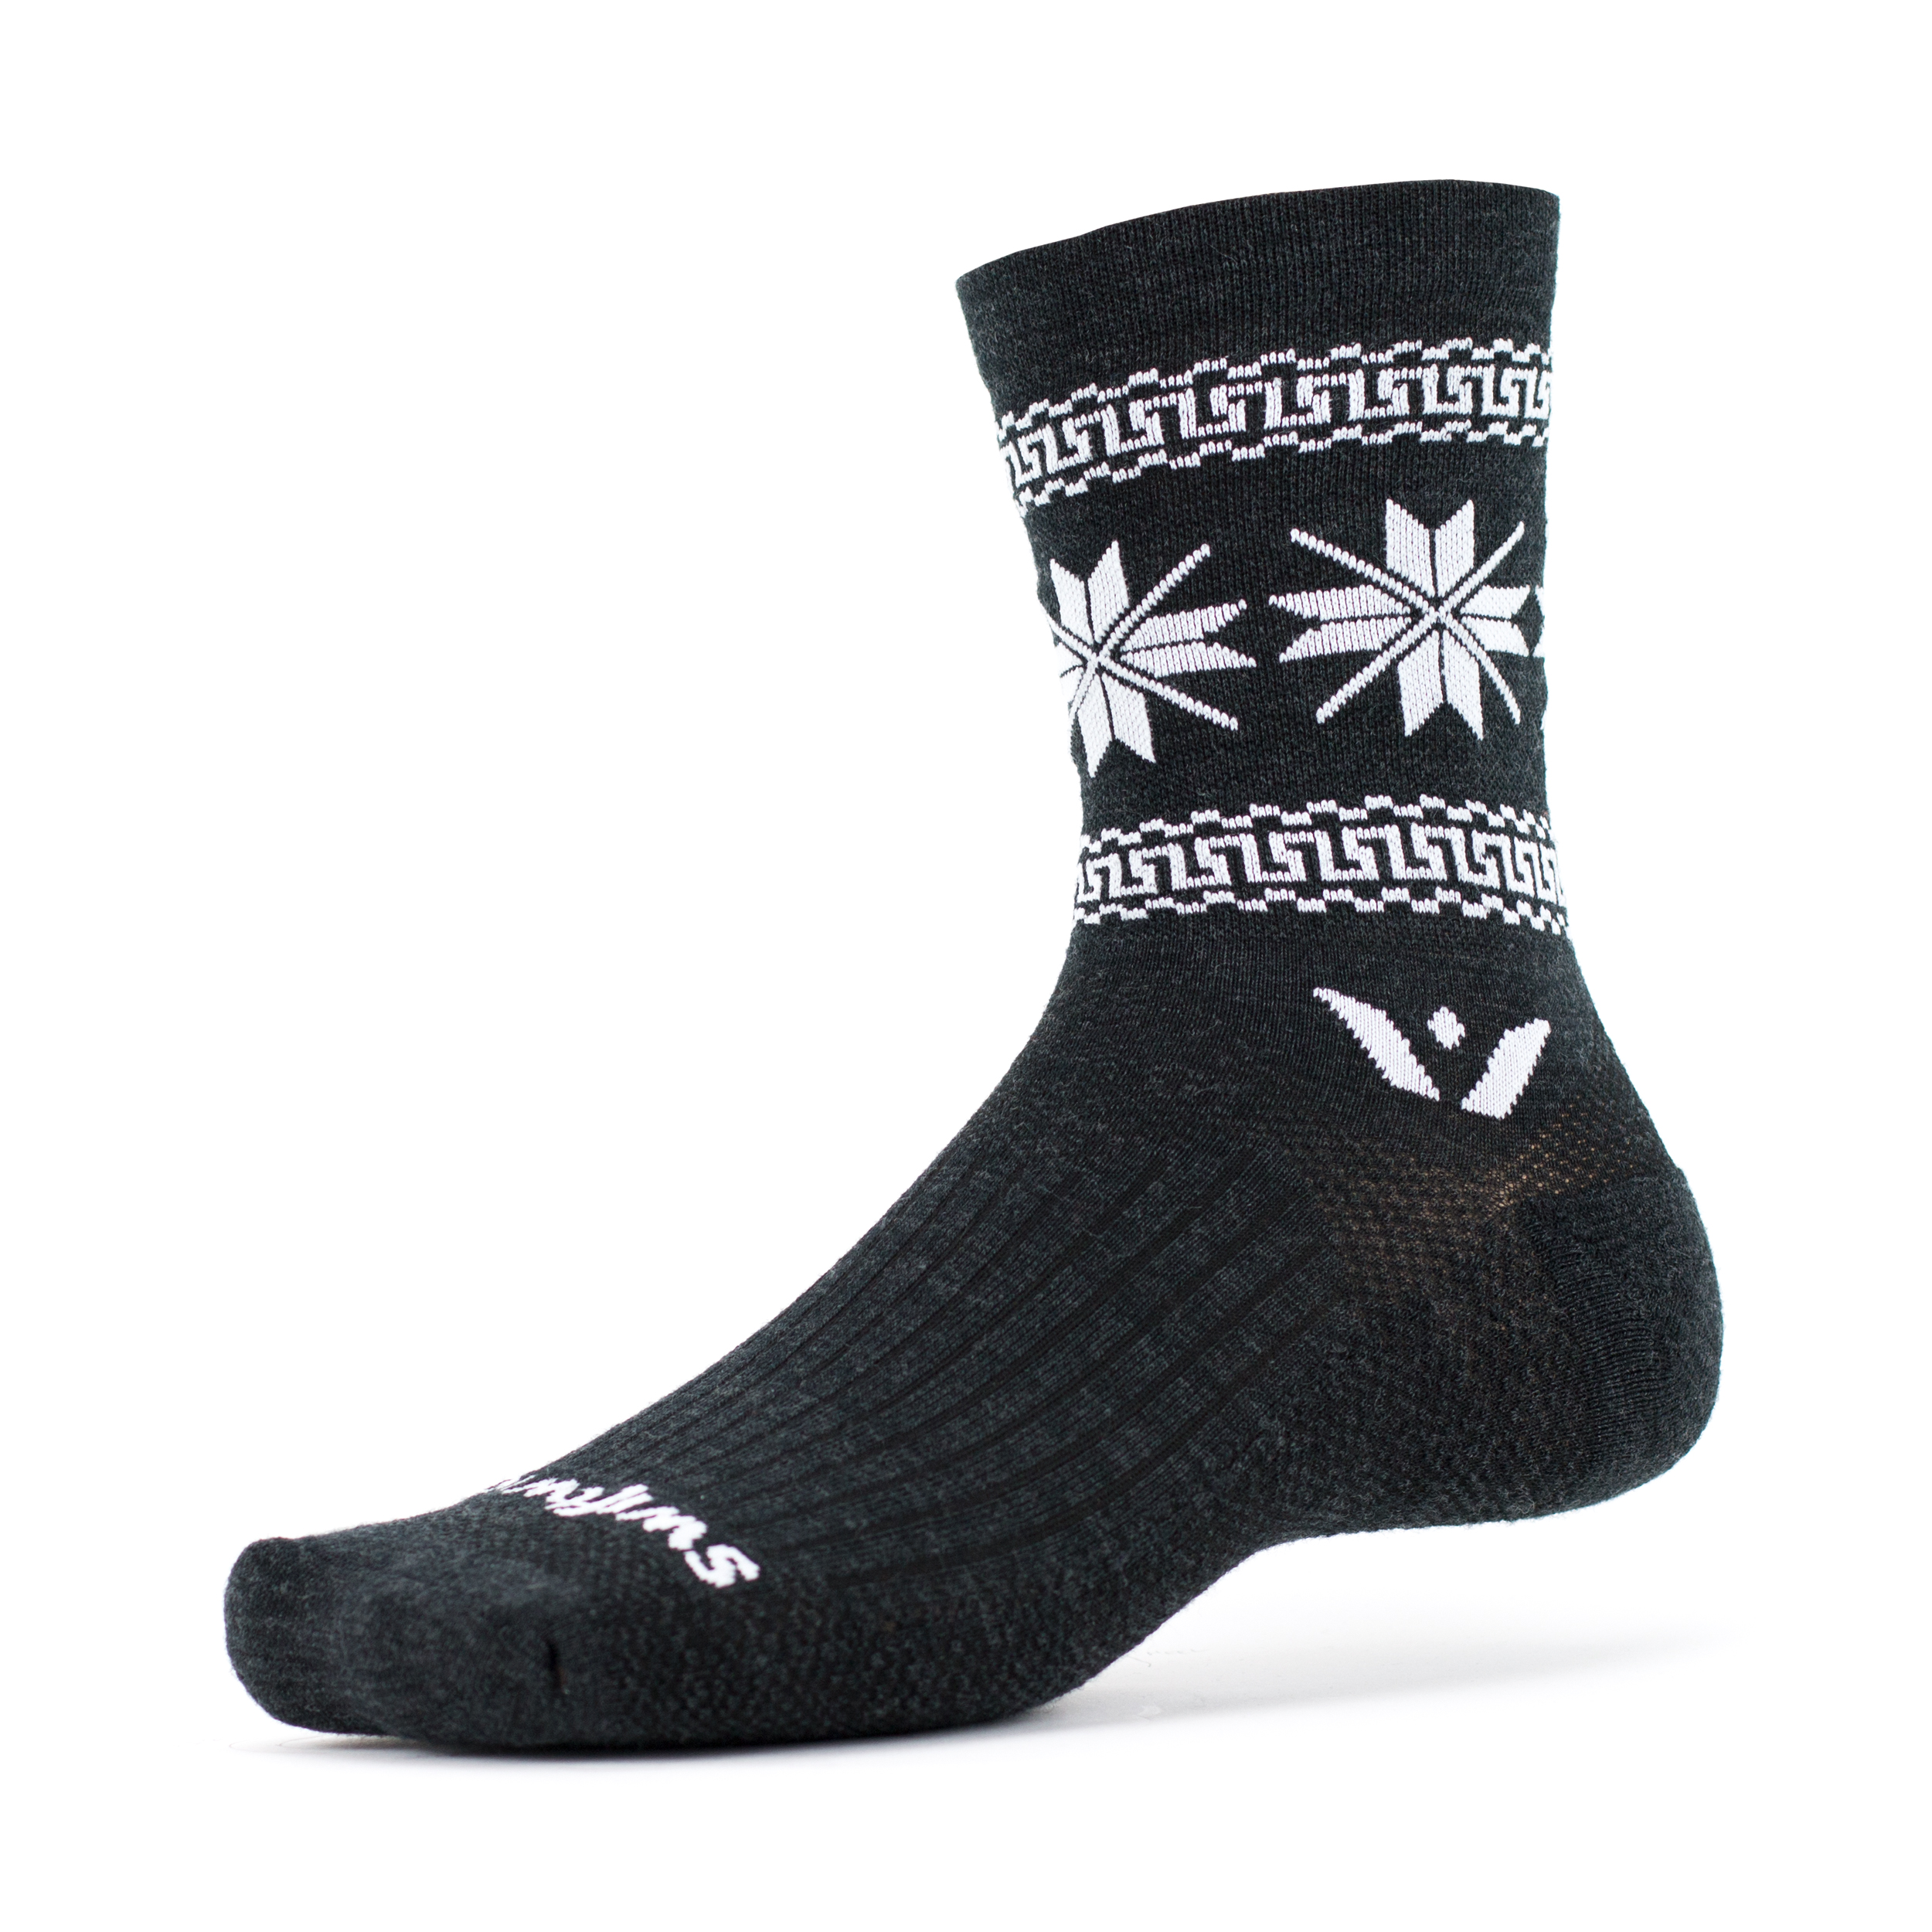 vision-winter-collection-coal-white-crew-socks-5-profile-5en80zz (2).jpg